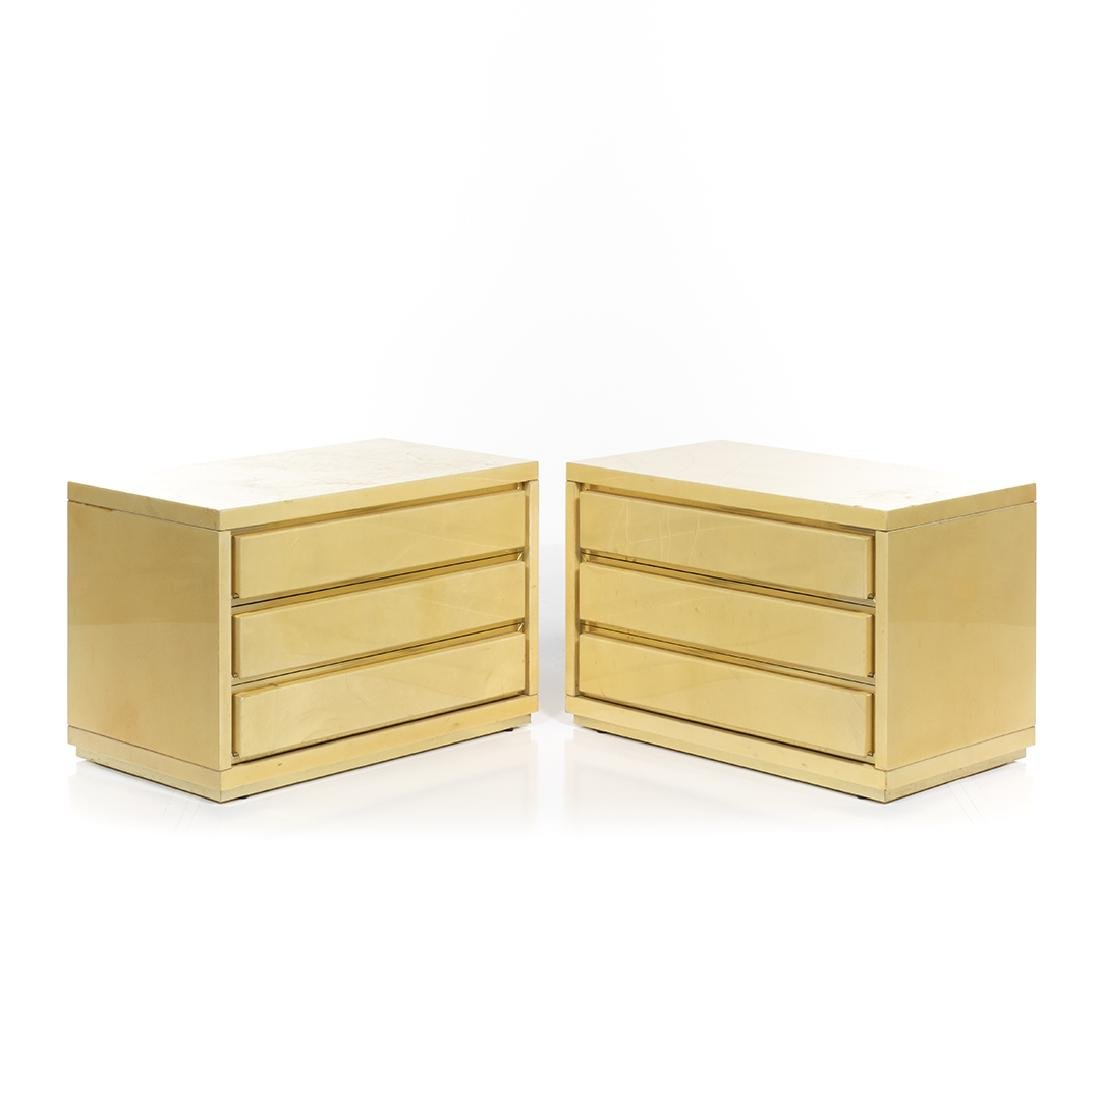 Aldo Tura Nightstands (2) - 5